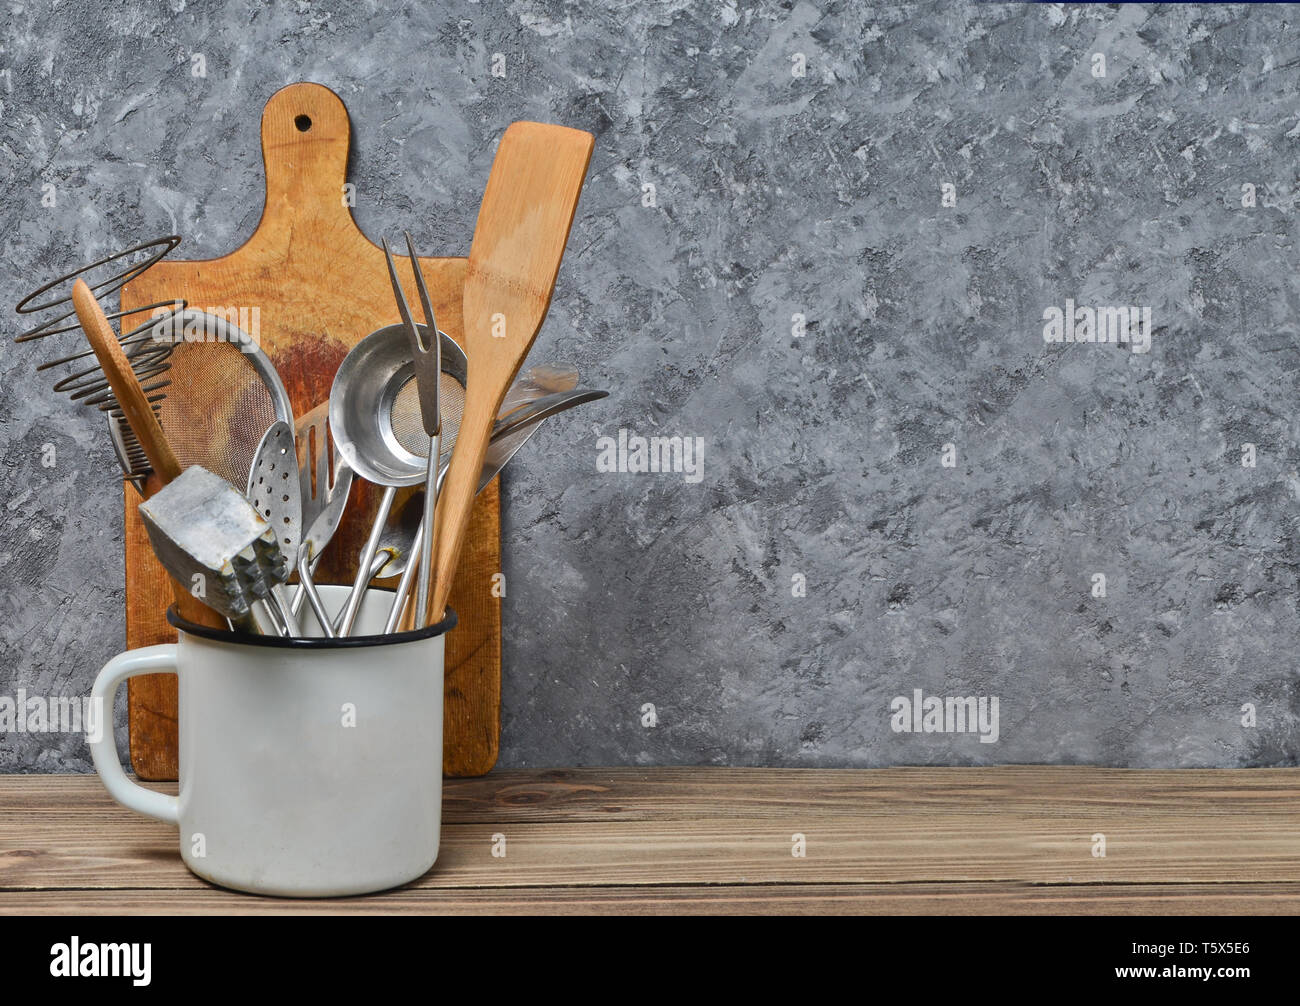 Kitchen tools for cooking on a wooden table on the background of a concrete wall.Copy space. Spoons, forks, wooden spatula. Stock Photo